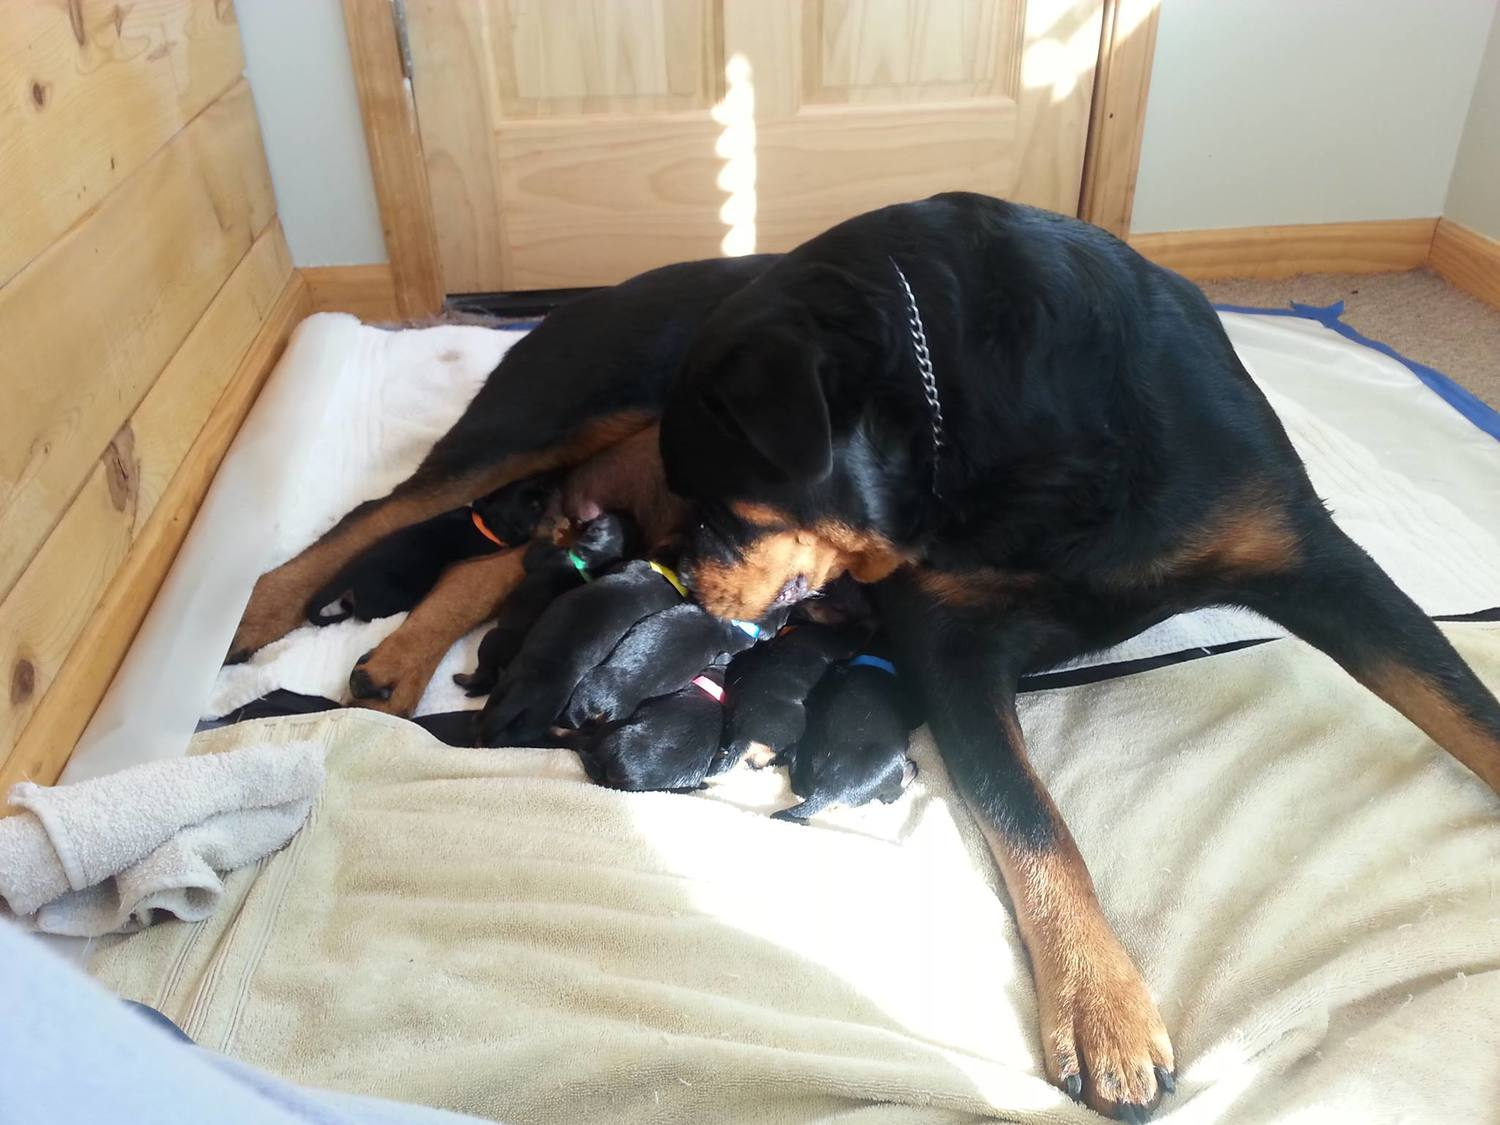 Mom and pups should be clean, appear healthy and in good weight. She shouldn't be stressed or in poor condition.